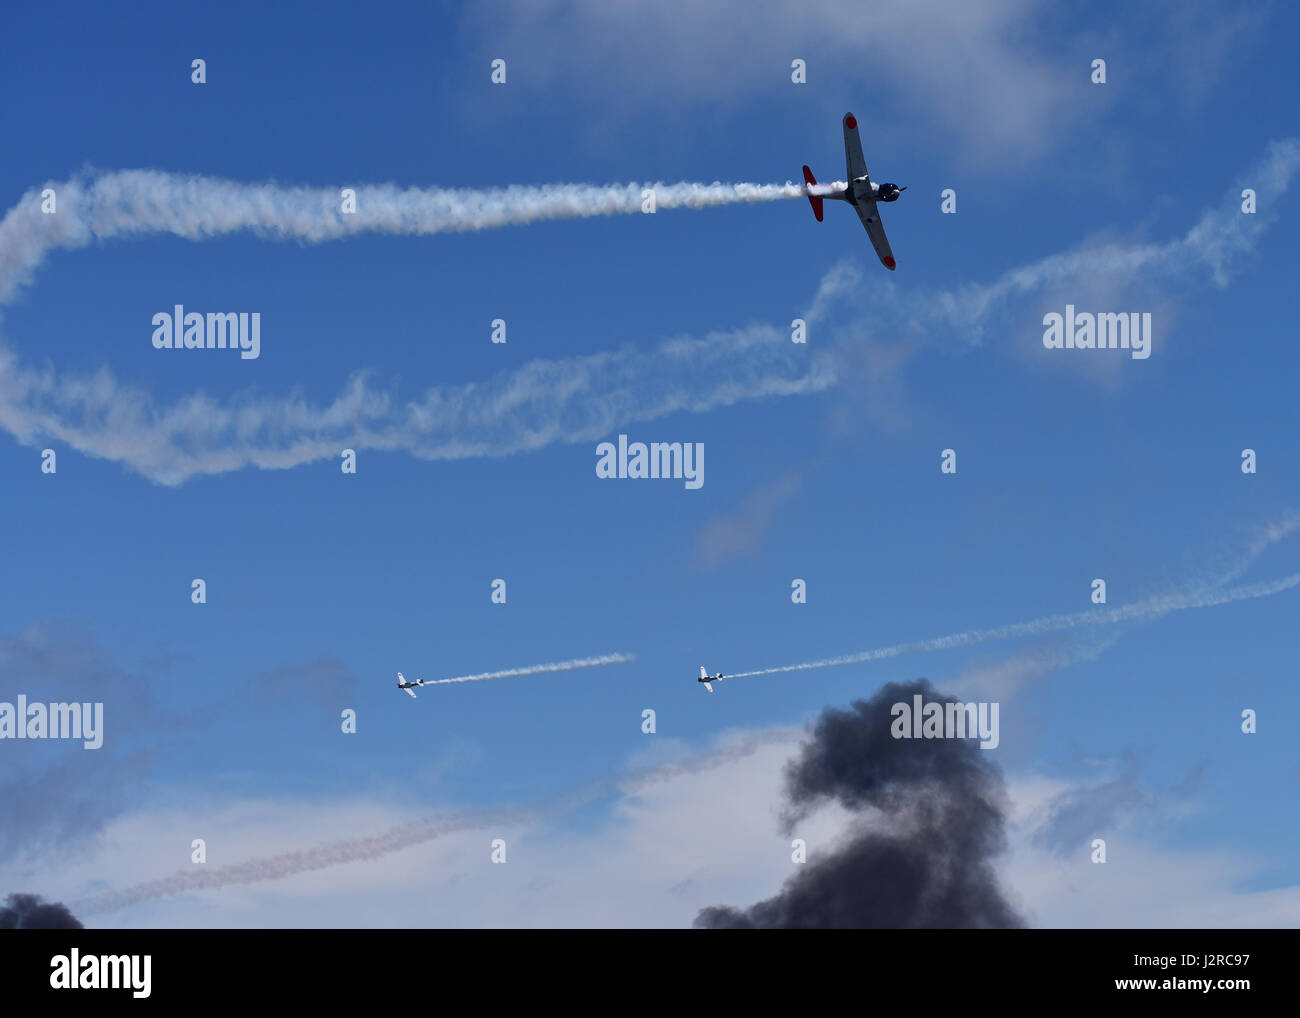 tora tora tora essay Tora tora  essays tora  tora  tora  was the attack code name given to  japanese fighter pilots to use to signal the green light to commanders in prior to  the.